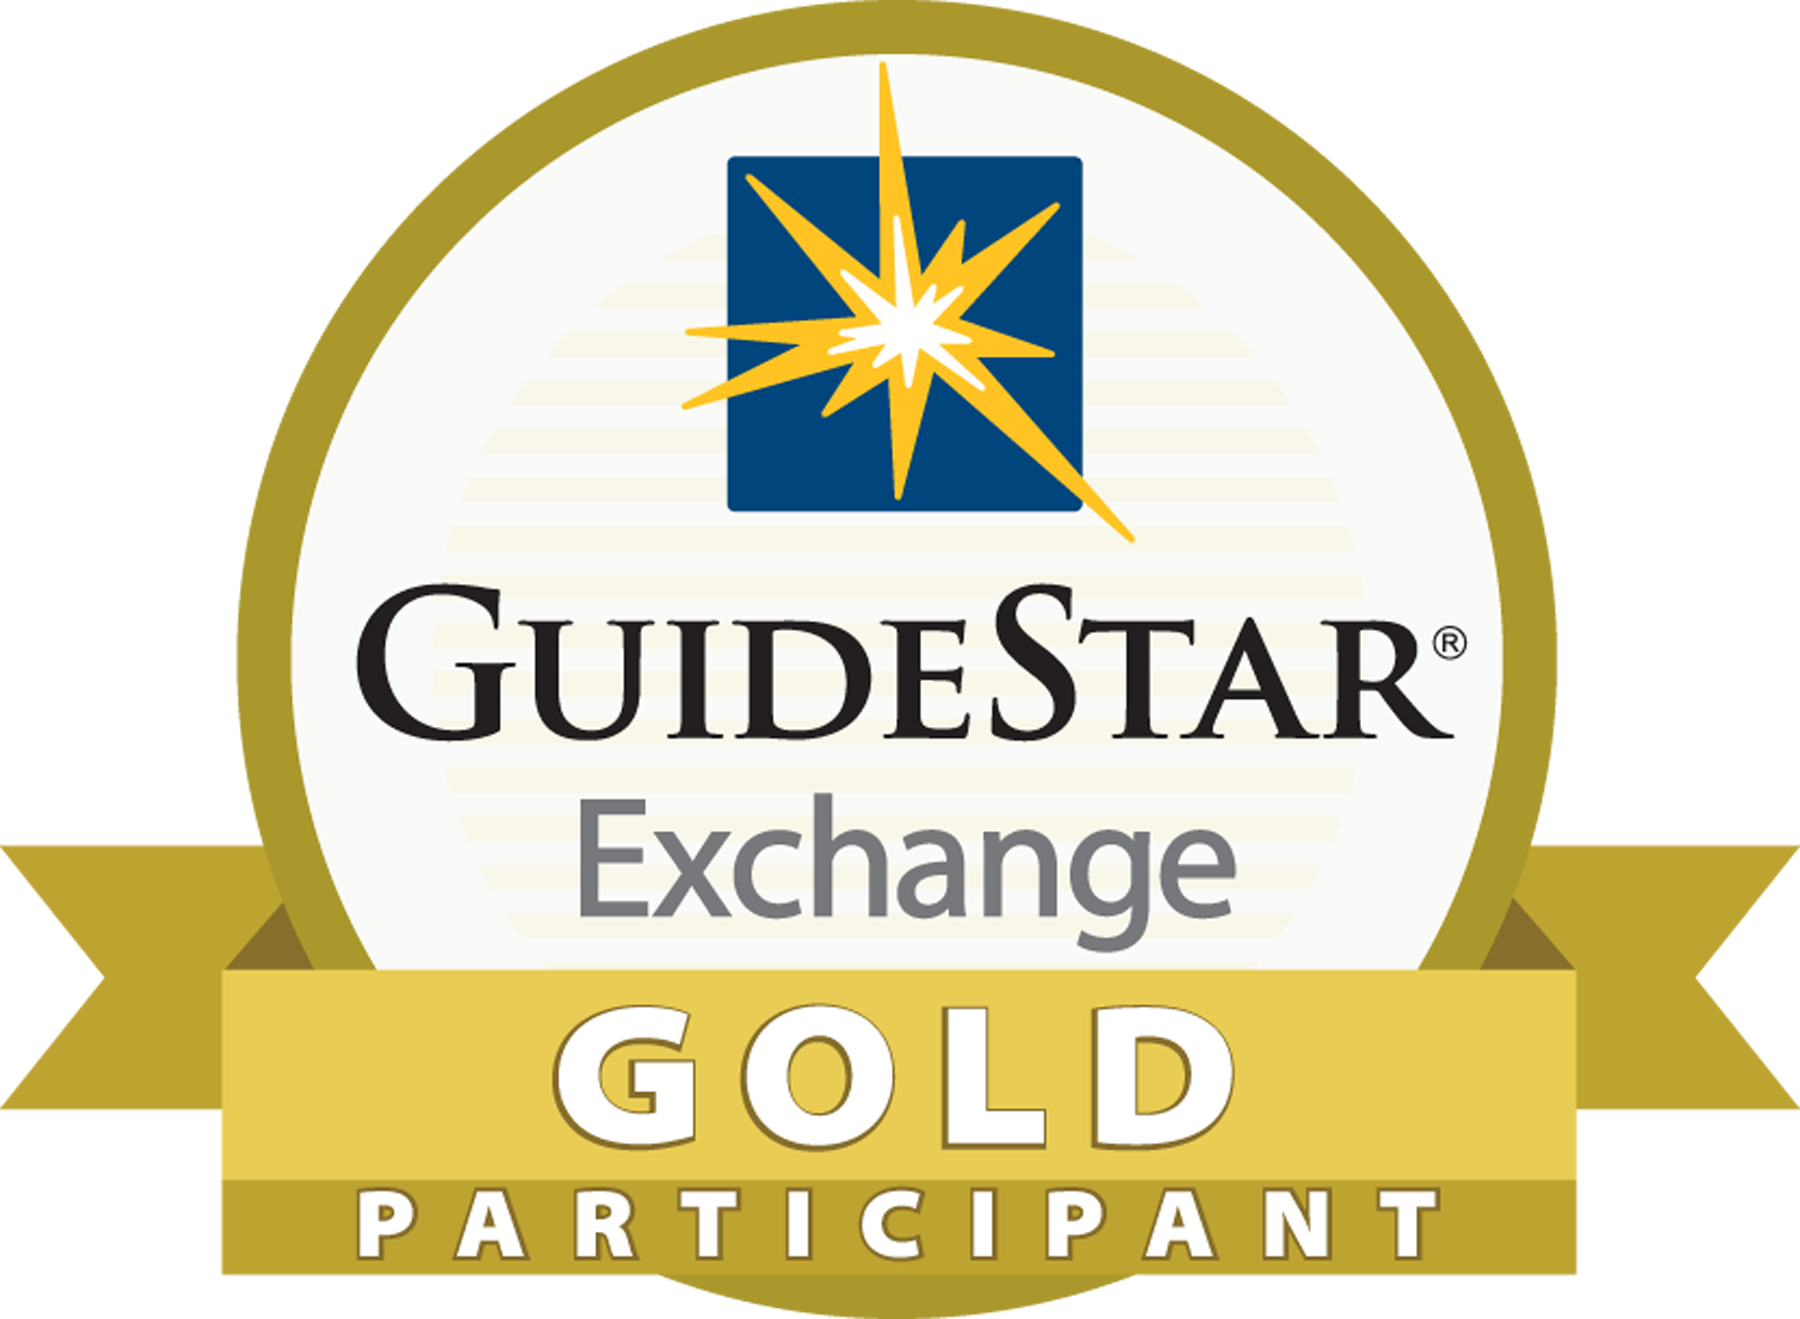 GuideStar Exchange Gold Participant